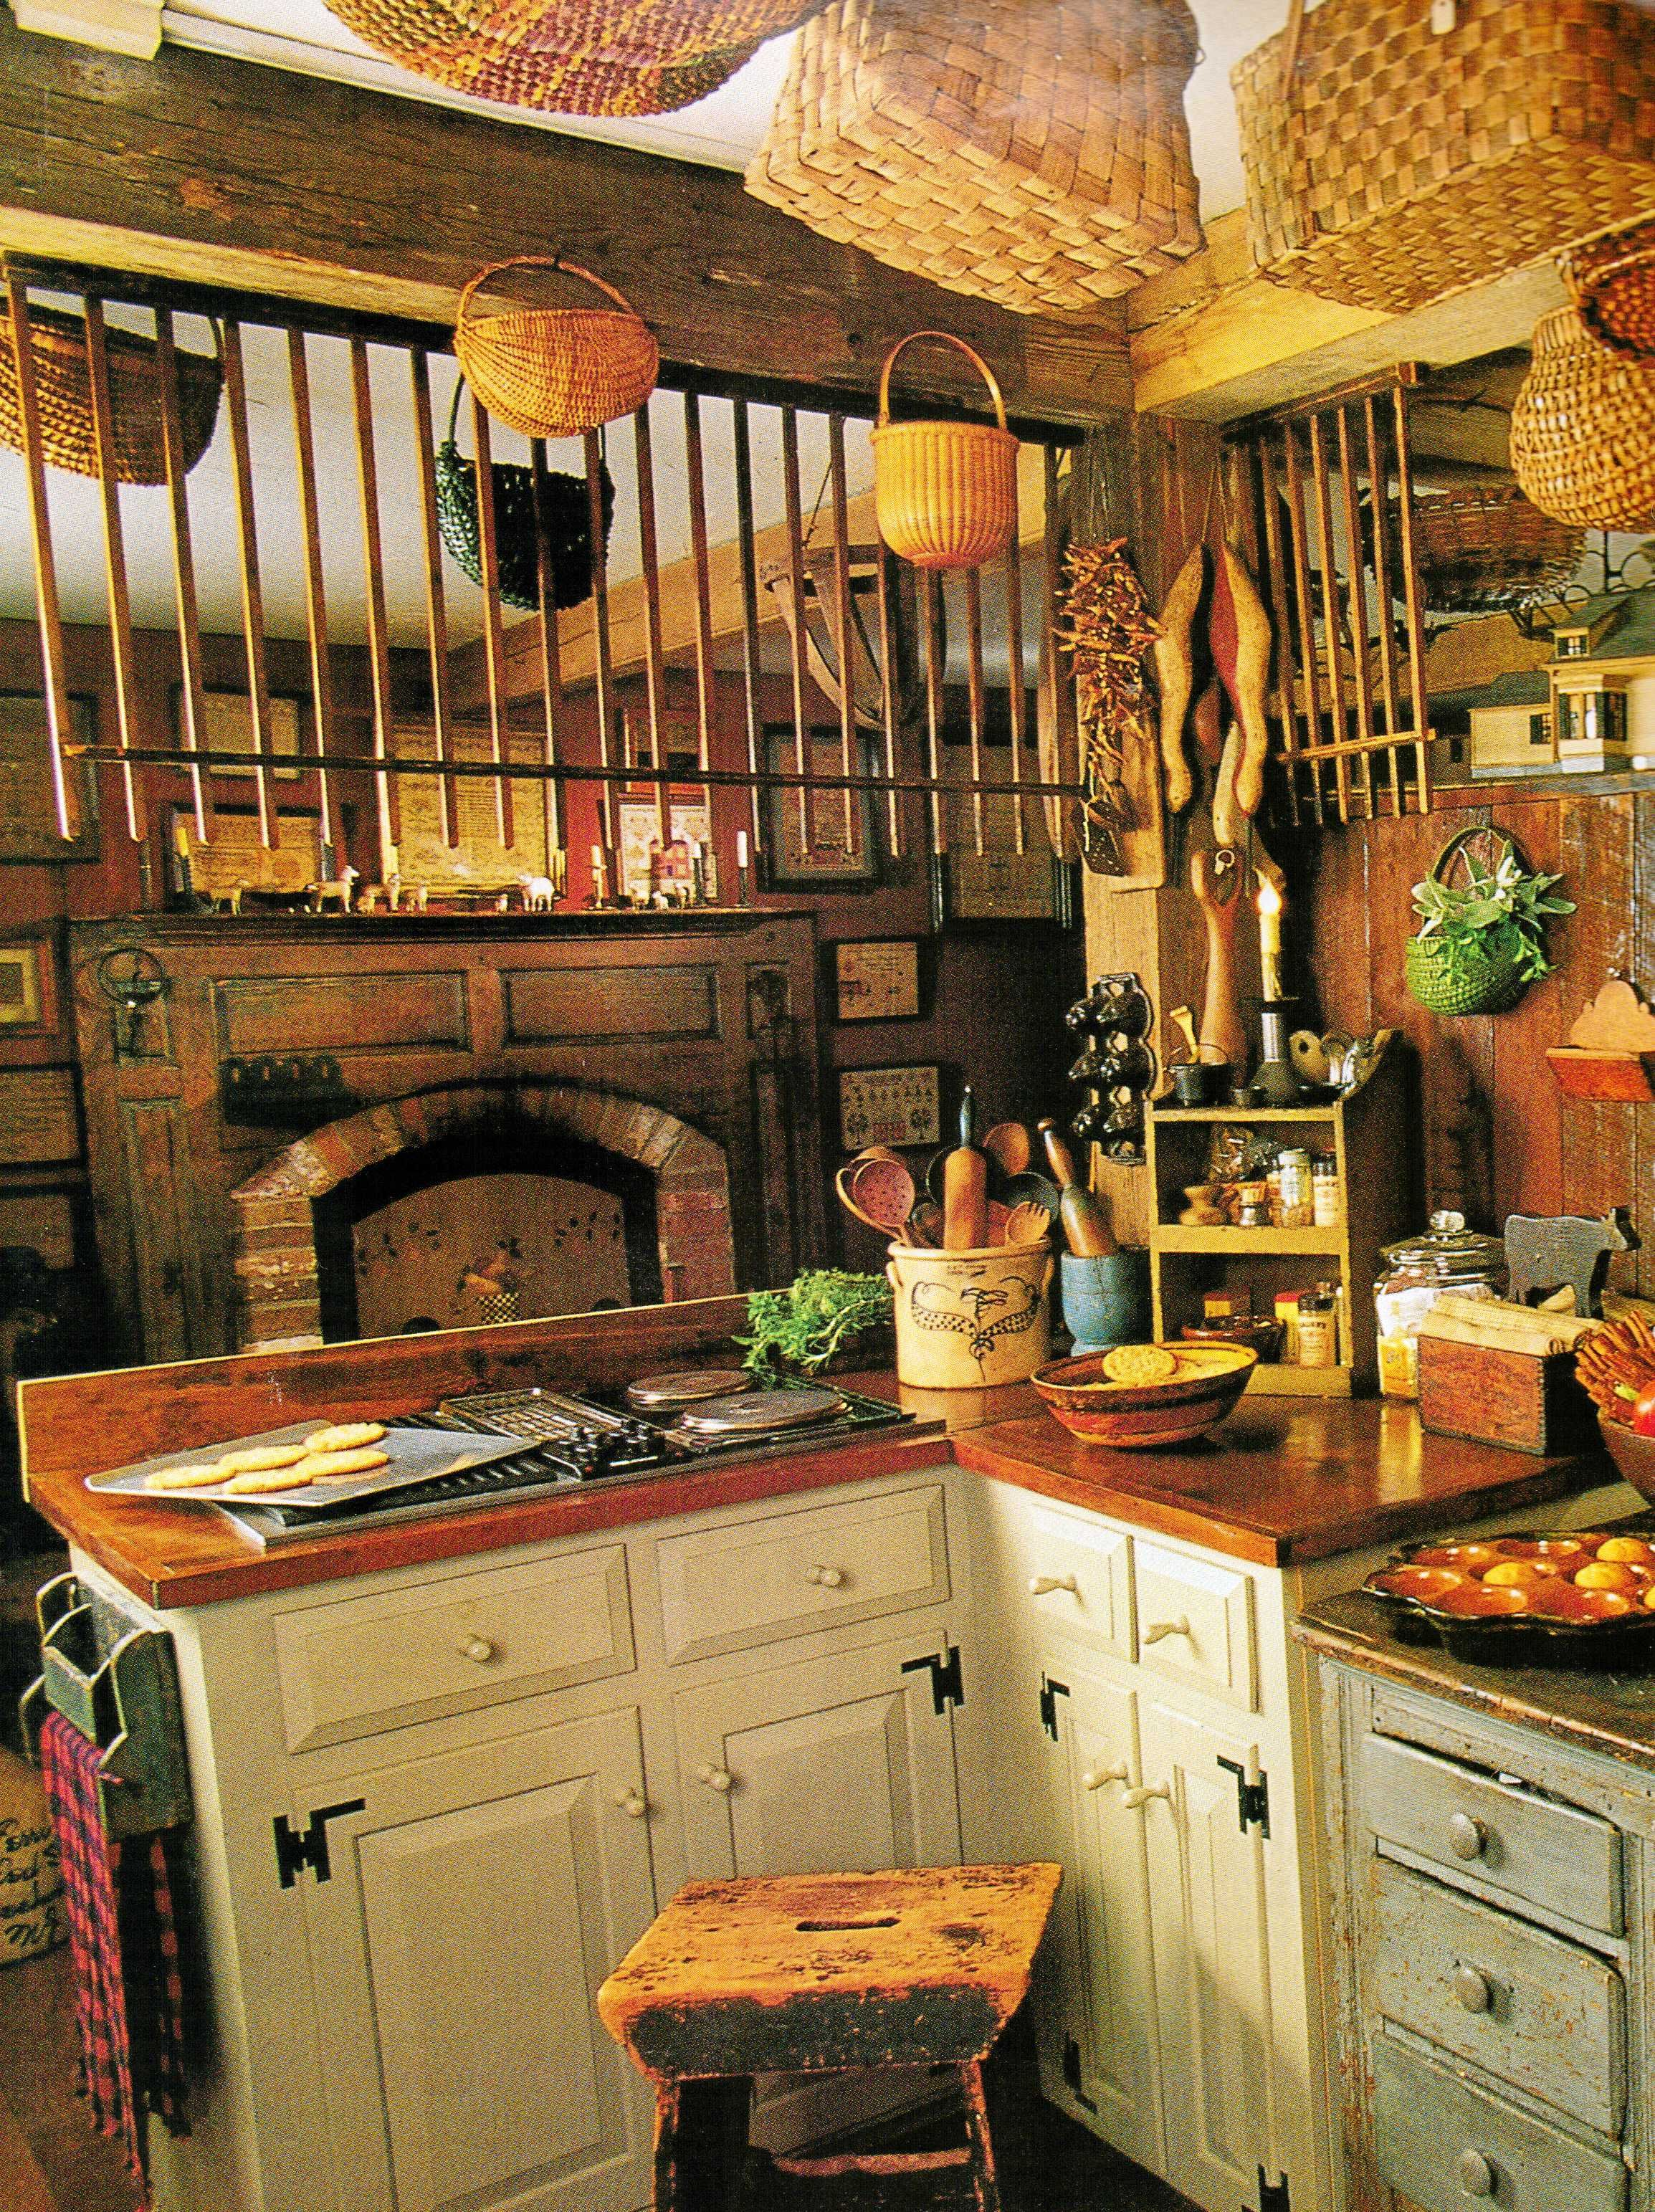 check out all the baskets great decorating idea rustic kitchen country kitchen primitive on kitchen id=14419